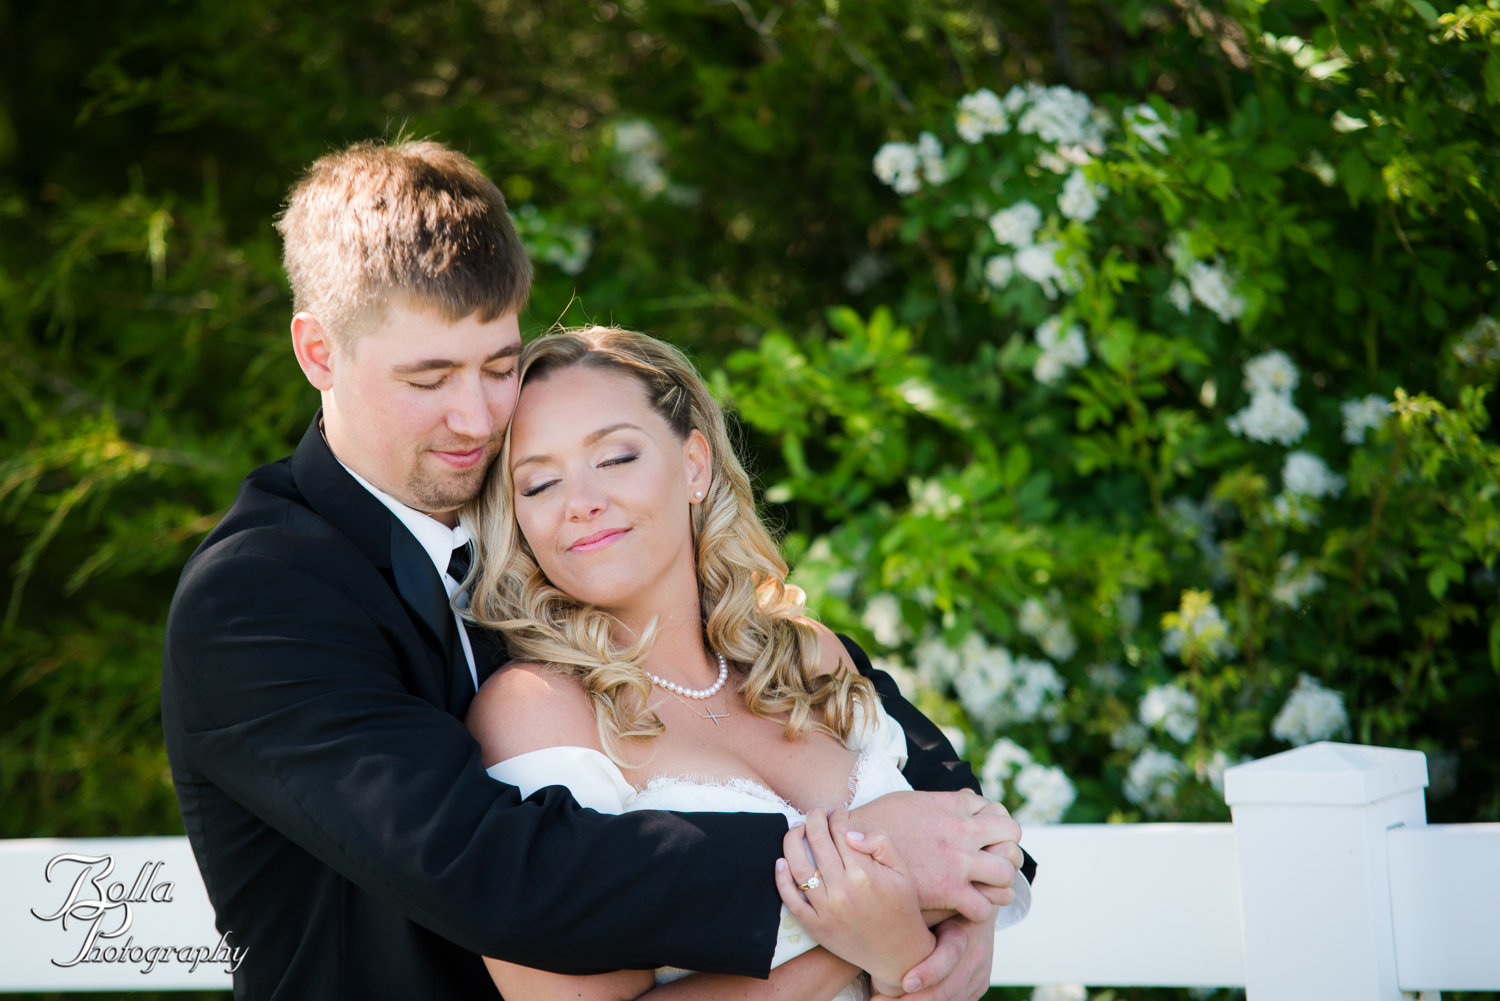 Bolla_Photography_St_Louis_wedding_photographer-0003.jpg